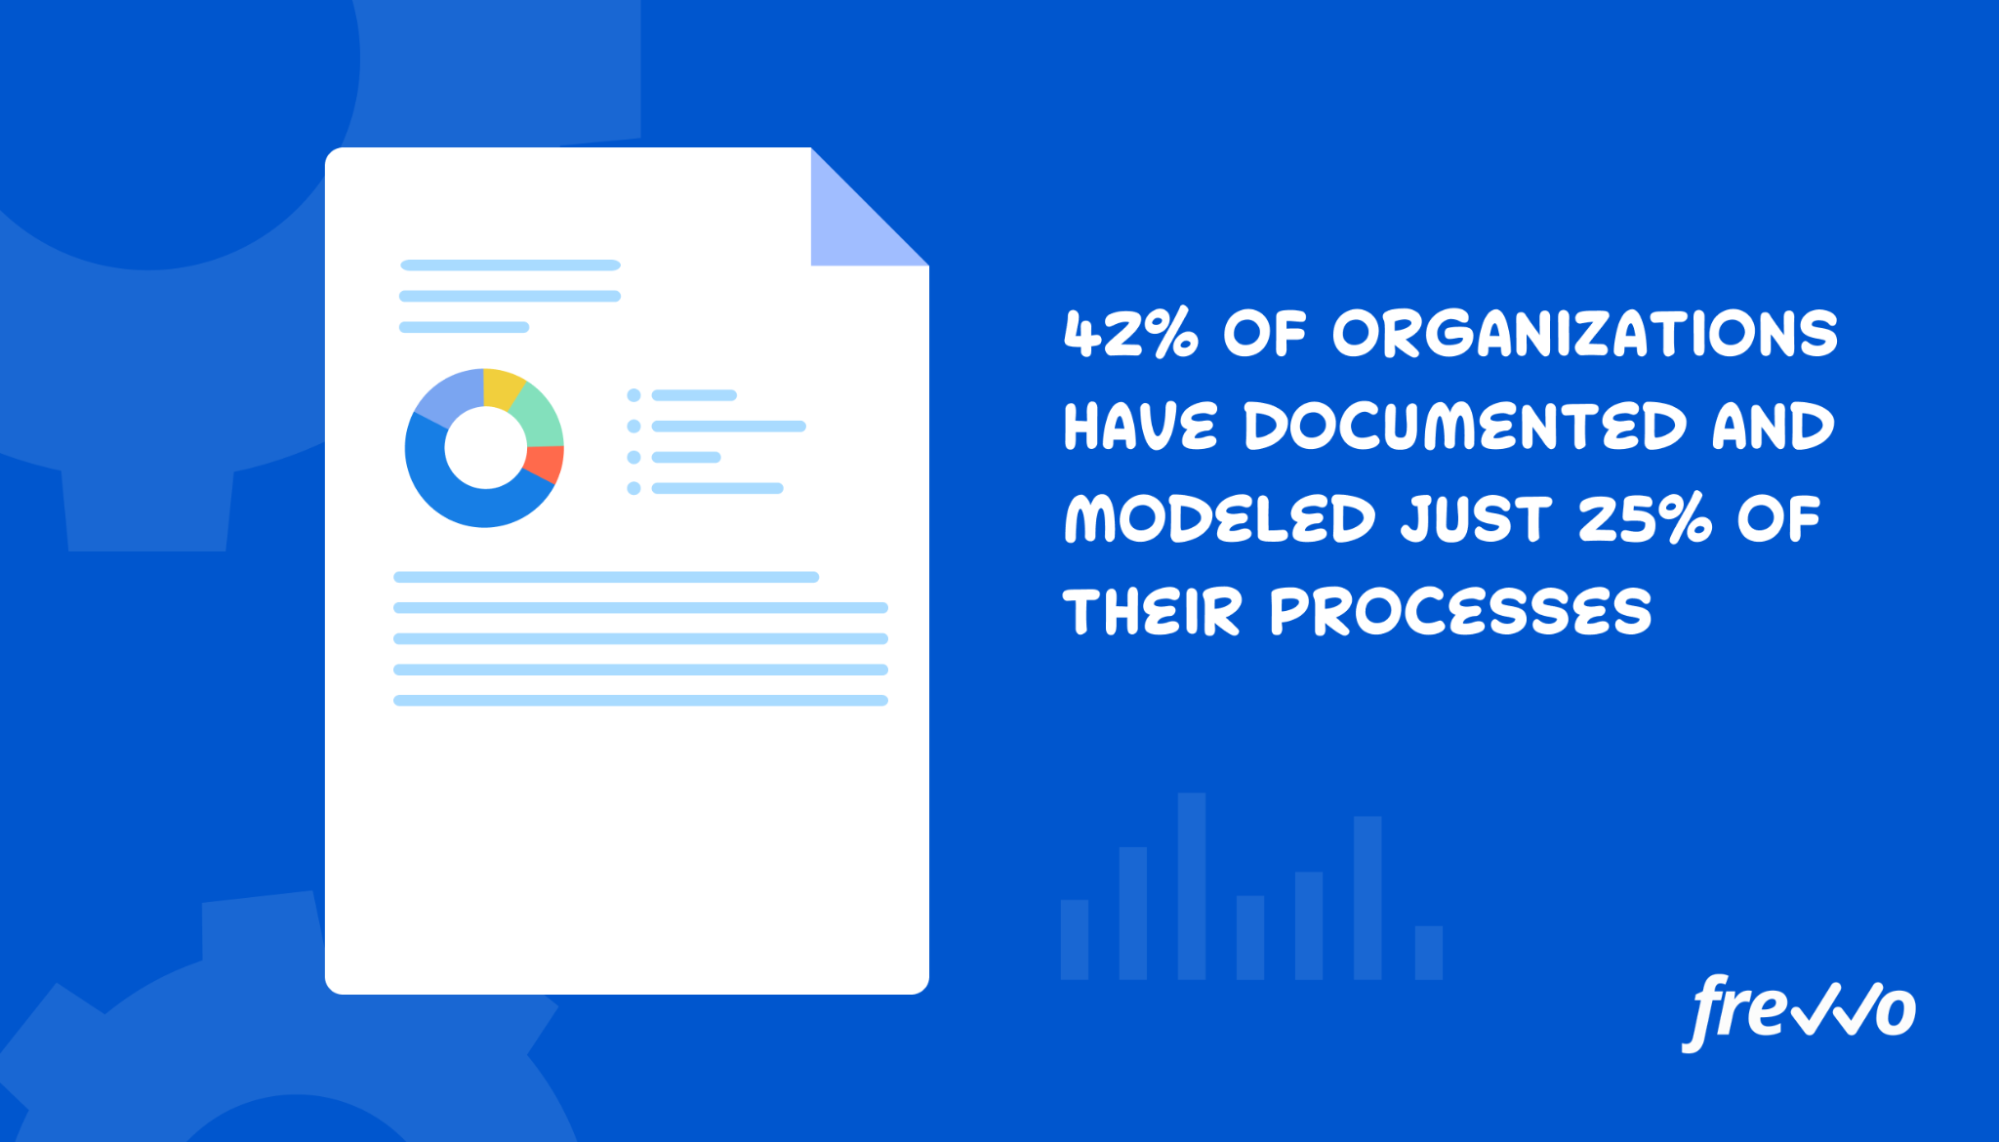 Most organizations have only documented 25% of their processes